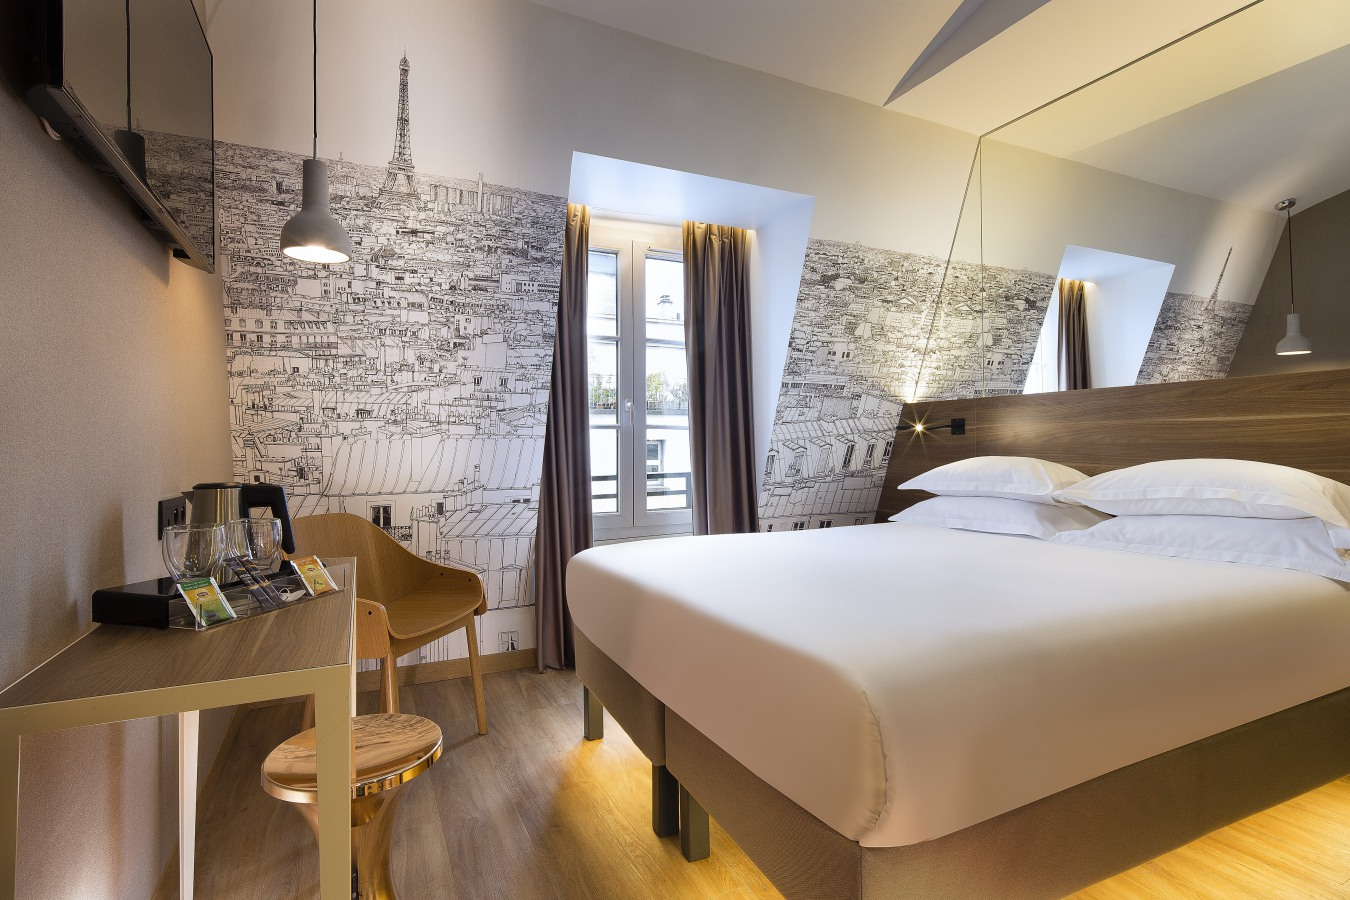 Cler Hotel - 利用規約